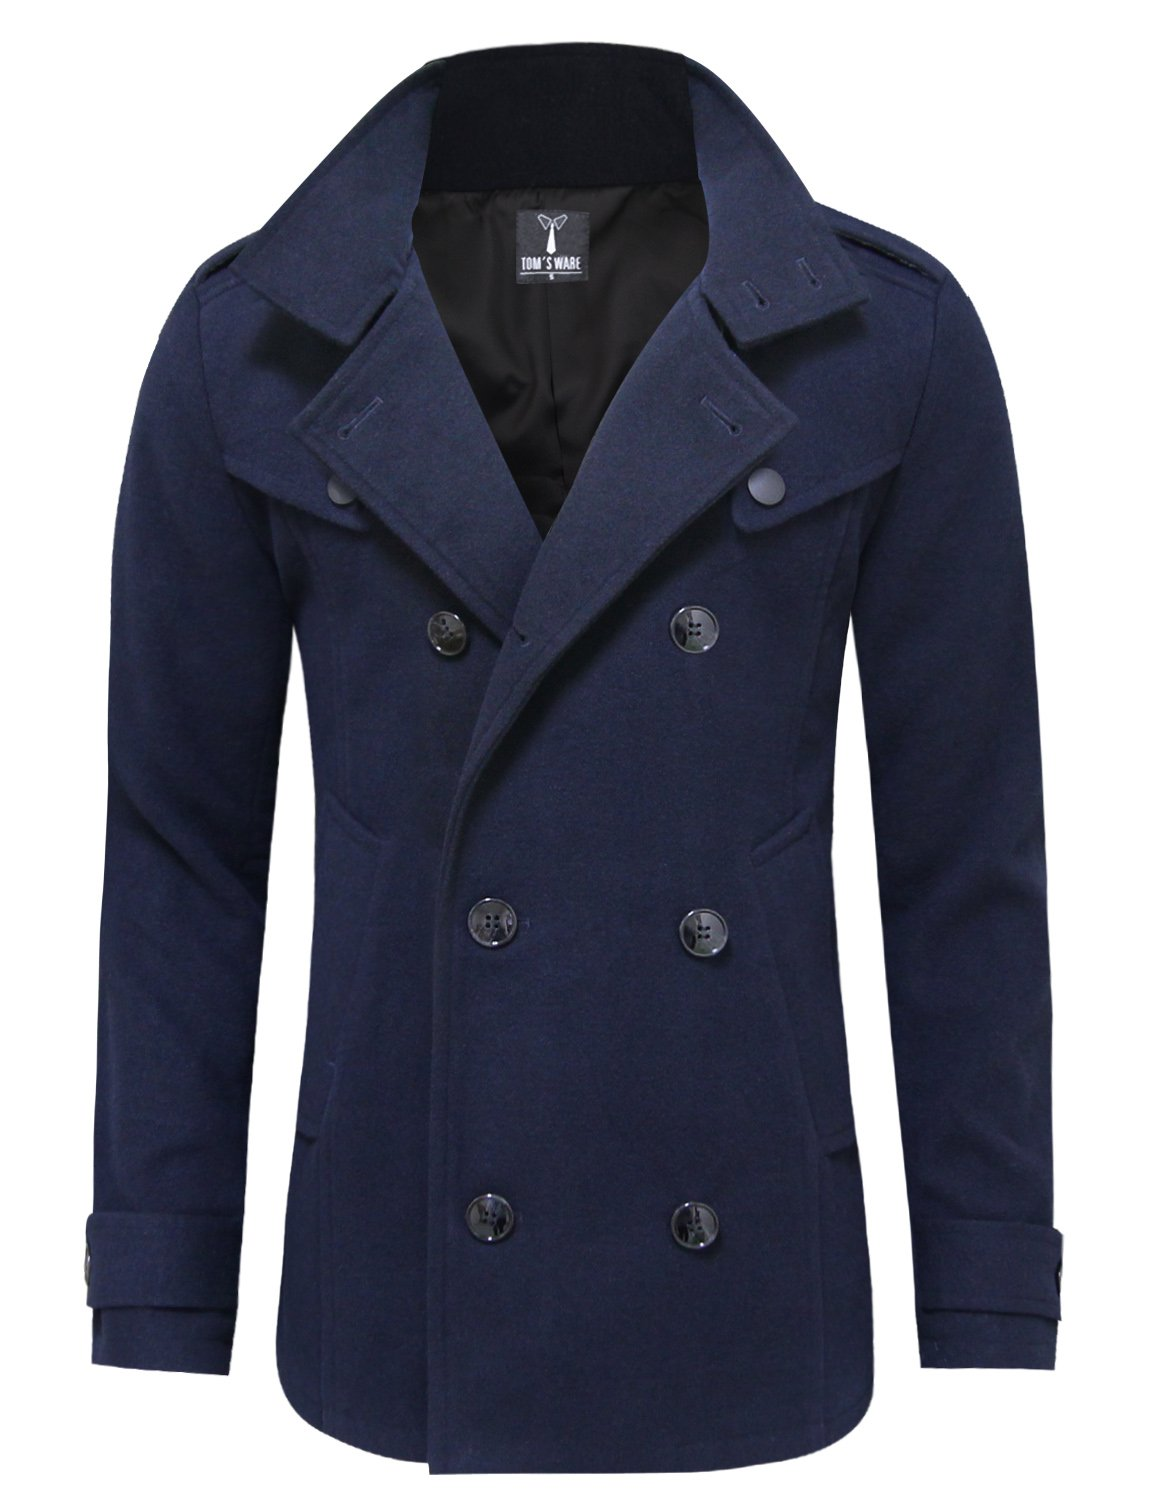 Tom's Ware Mens Stylish Fashion Classic Wool Double Breasted Pea Coat TWCC06-NAVY-US M